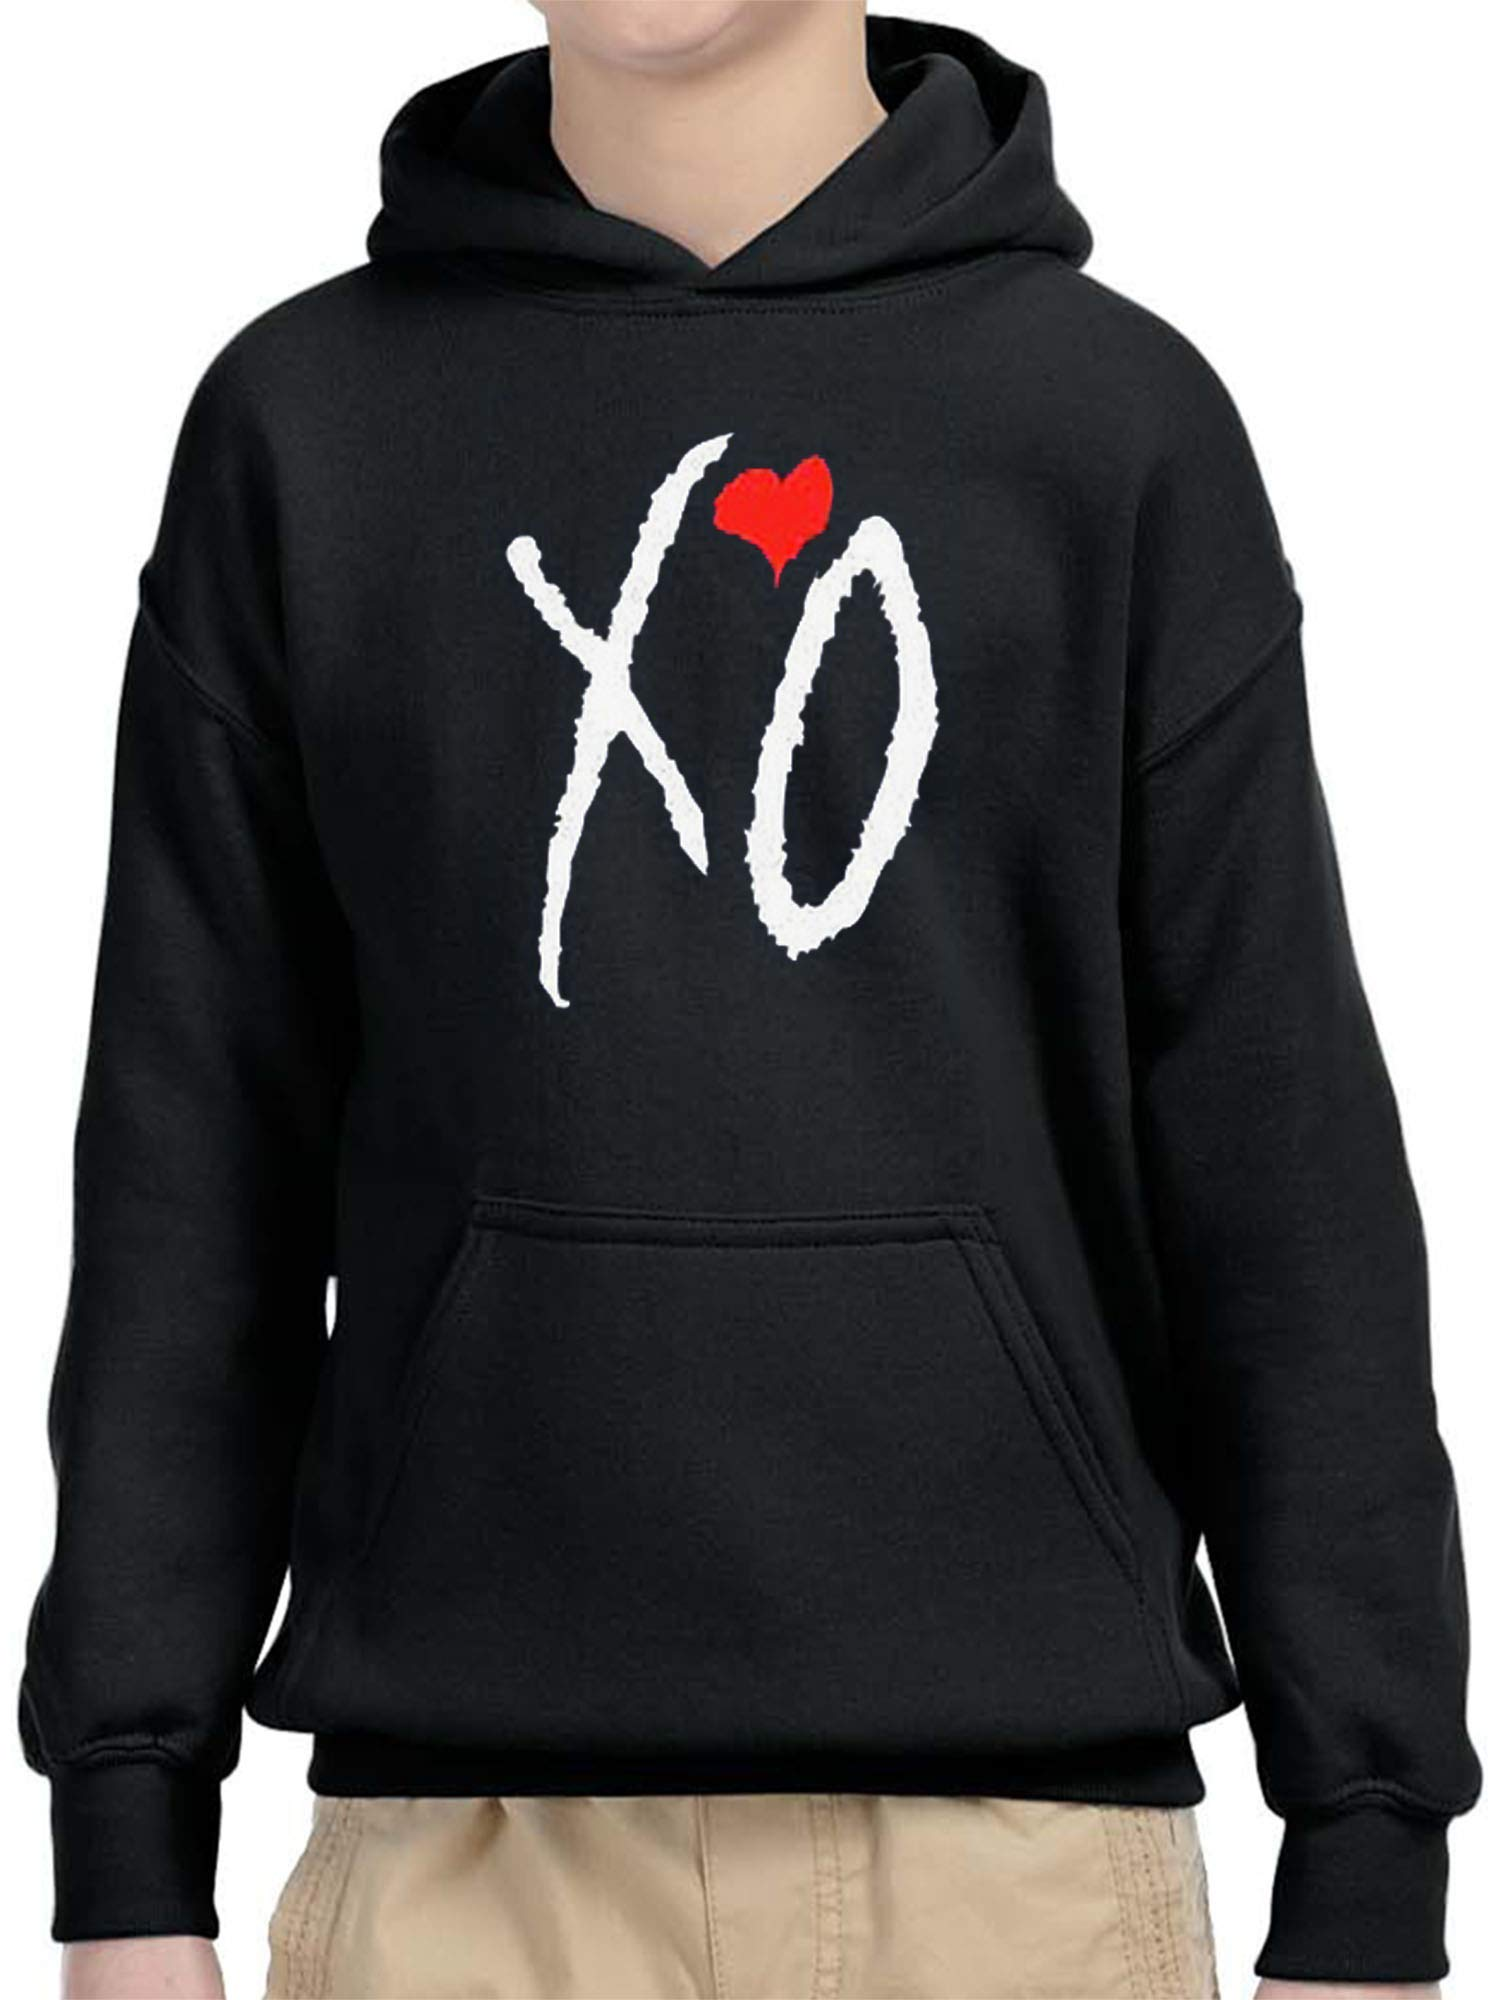 189 Xo The Weeknd Heart Letters Unisex Pullover Shirts